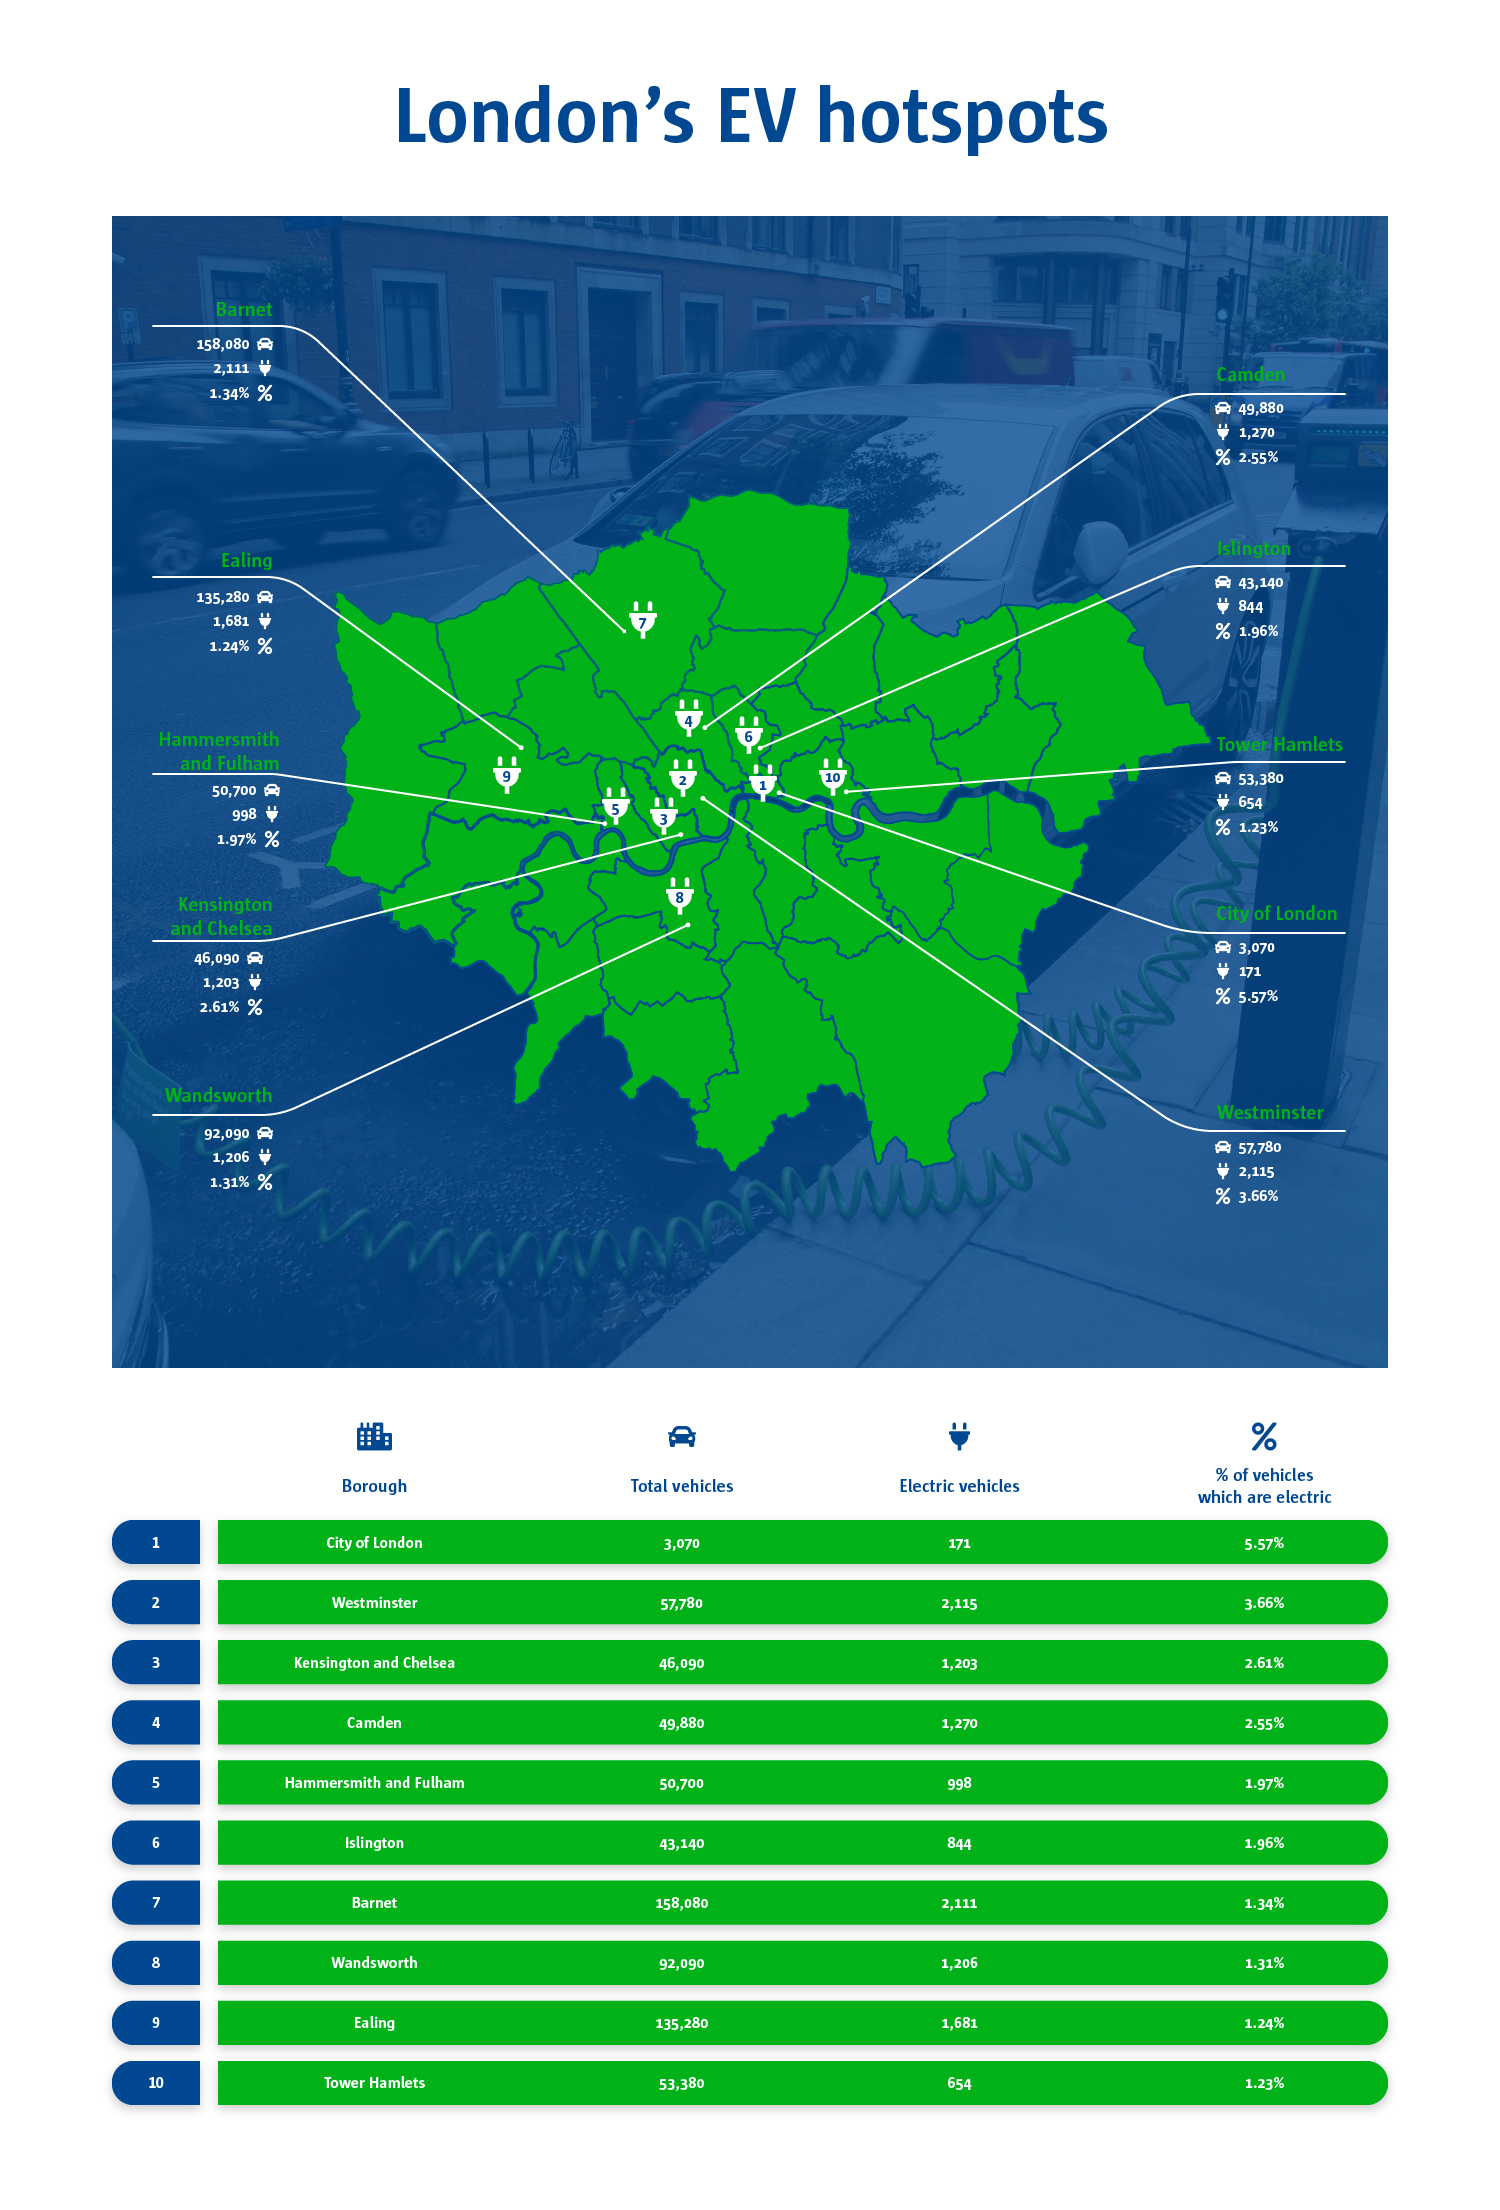 A map to show London's electric vehicle hotspots. The most popular being the City of London with 5.57% of vehicles which are electric. Whilst the Tower Hamlets only have 1.23% of vehicles that are electric.